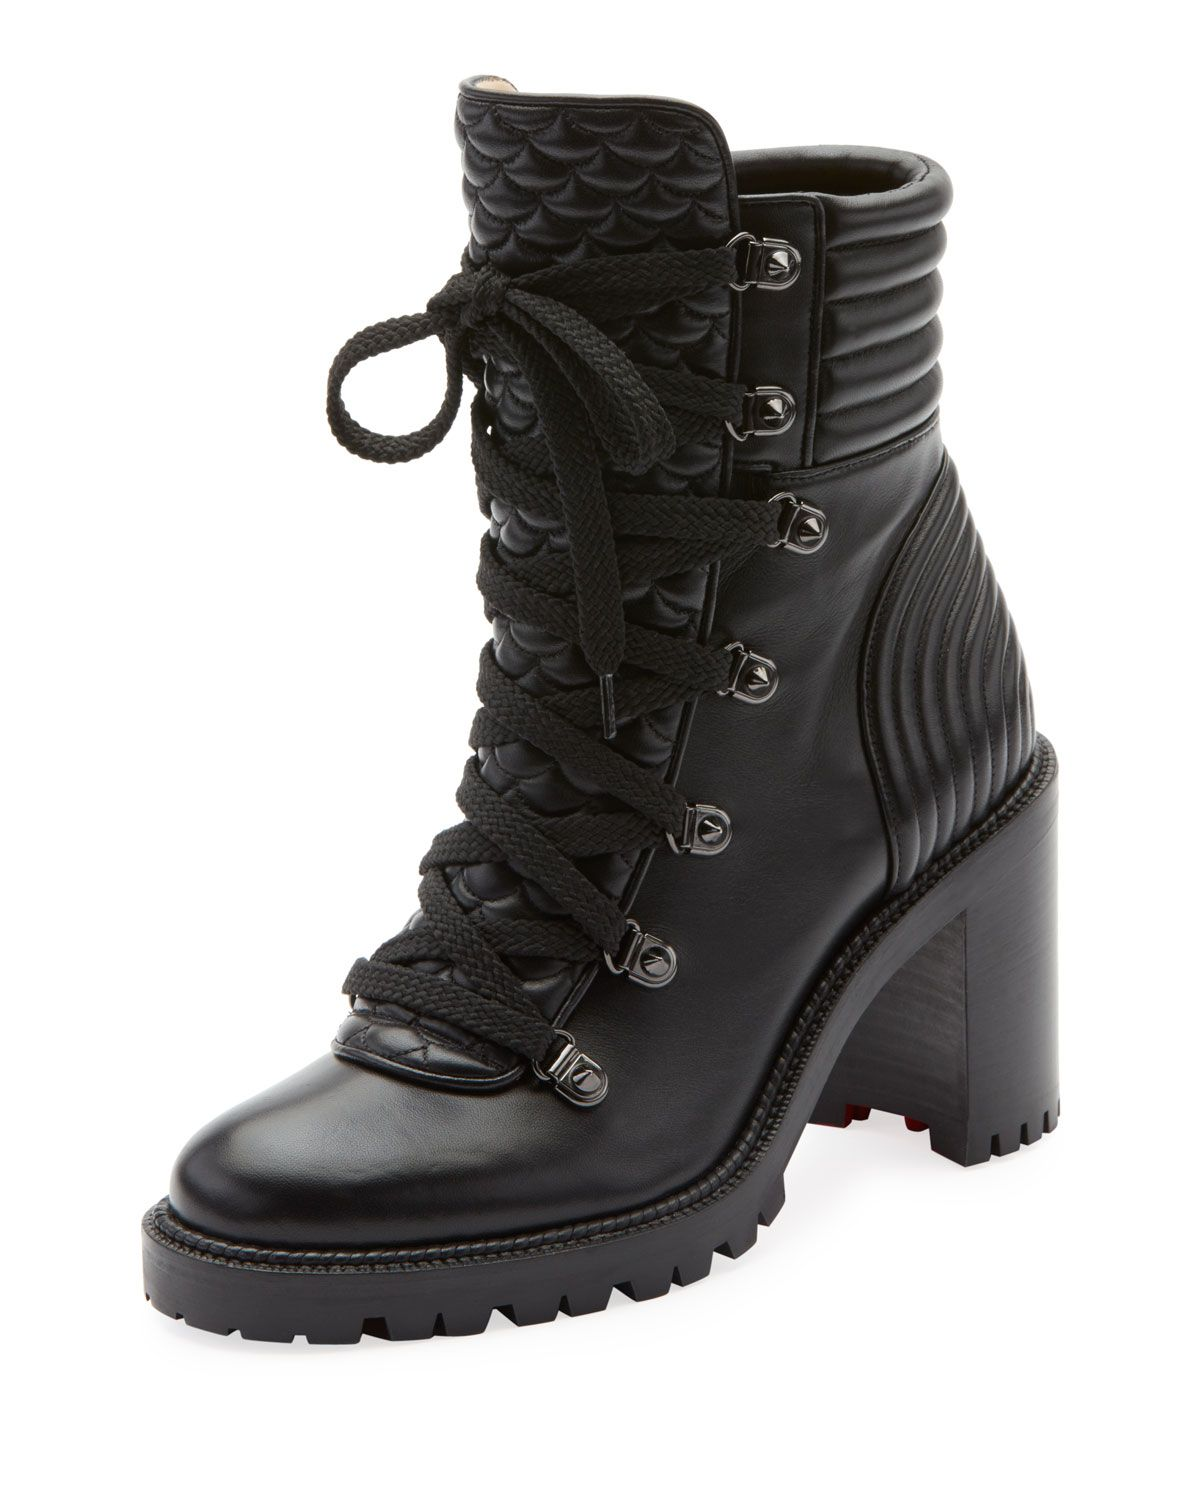 860de8be2f50 Christian Louboutin Mad Lace-Up Leather Block-Heel Hiker Boots In Black